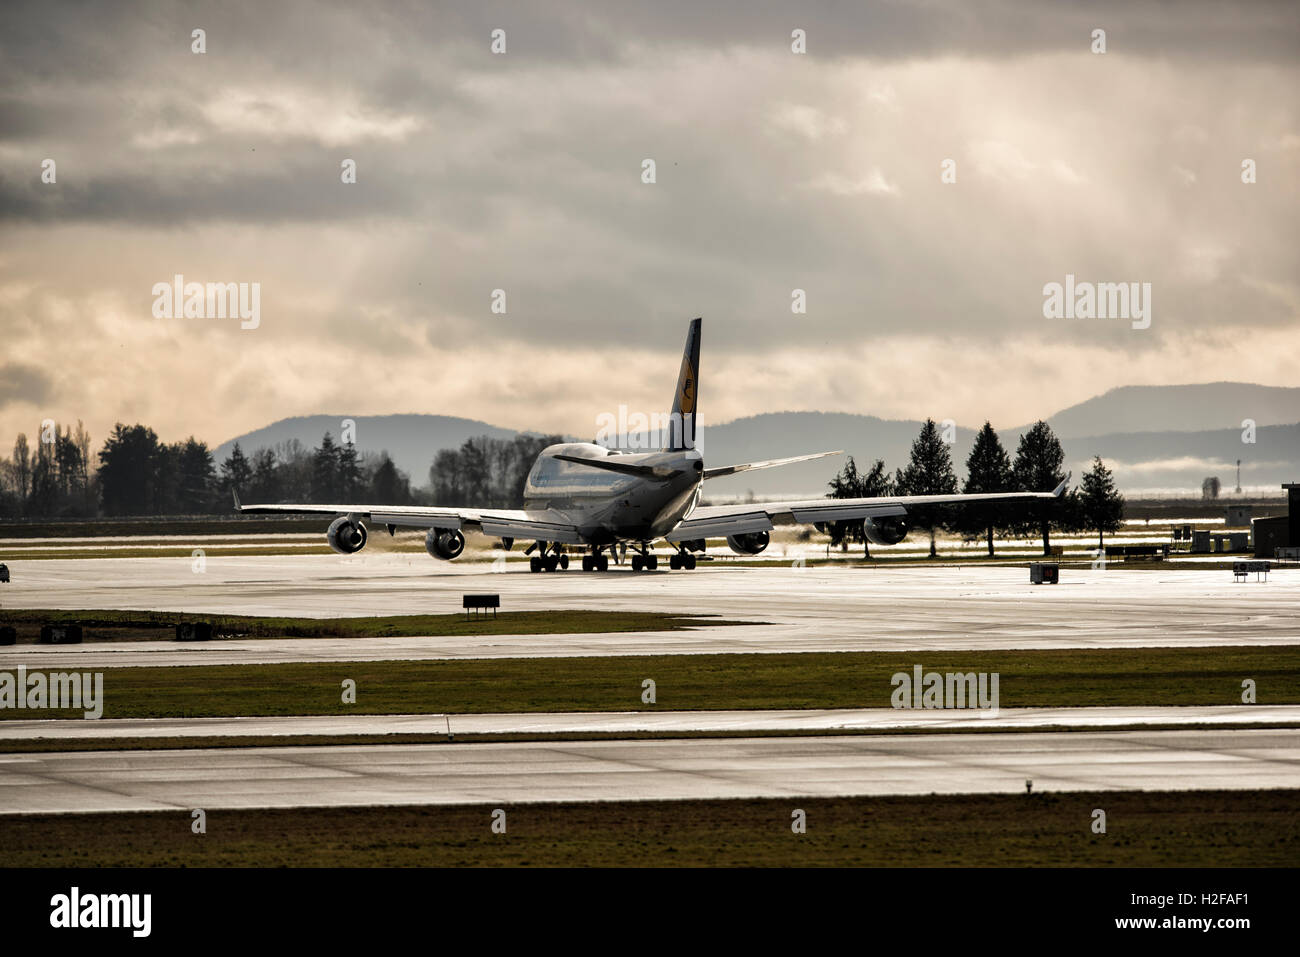 Lufthansa Boeing 747 taxiing down the tarmac, Vancouver International Airport, British Columbia. - Stock Image